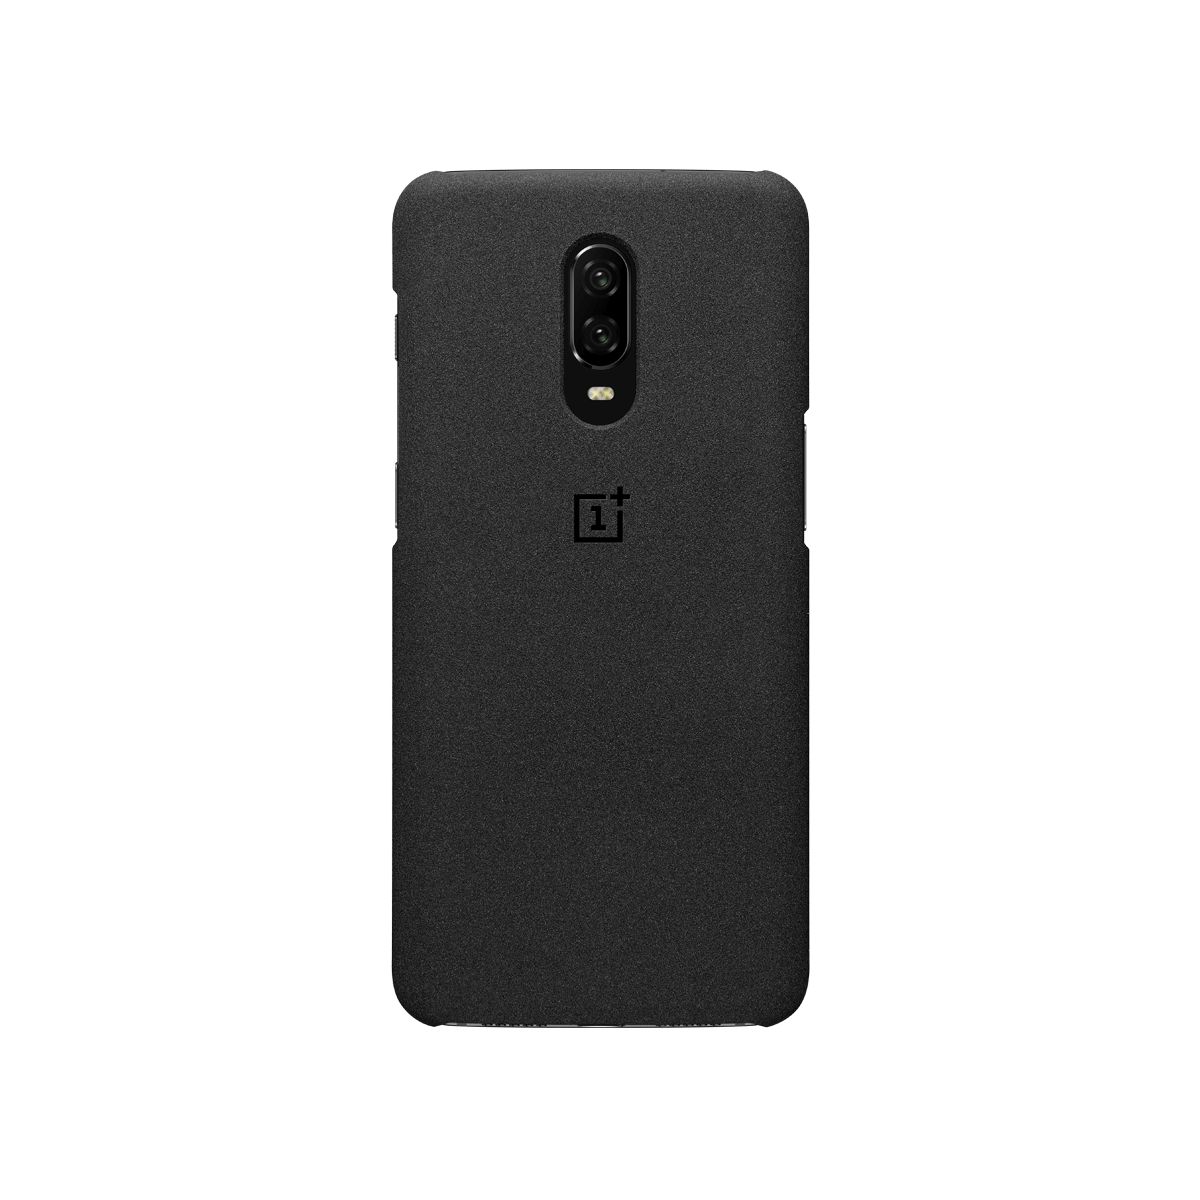 OnePlus 6T skyddsfodral